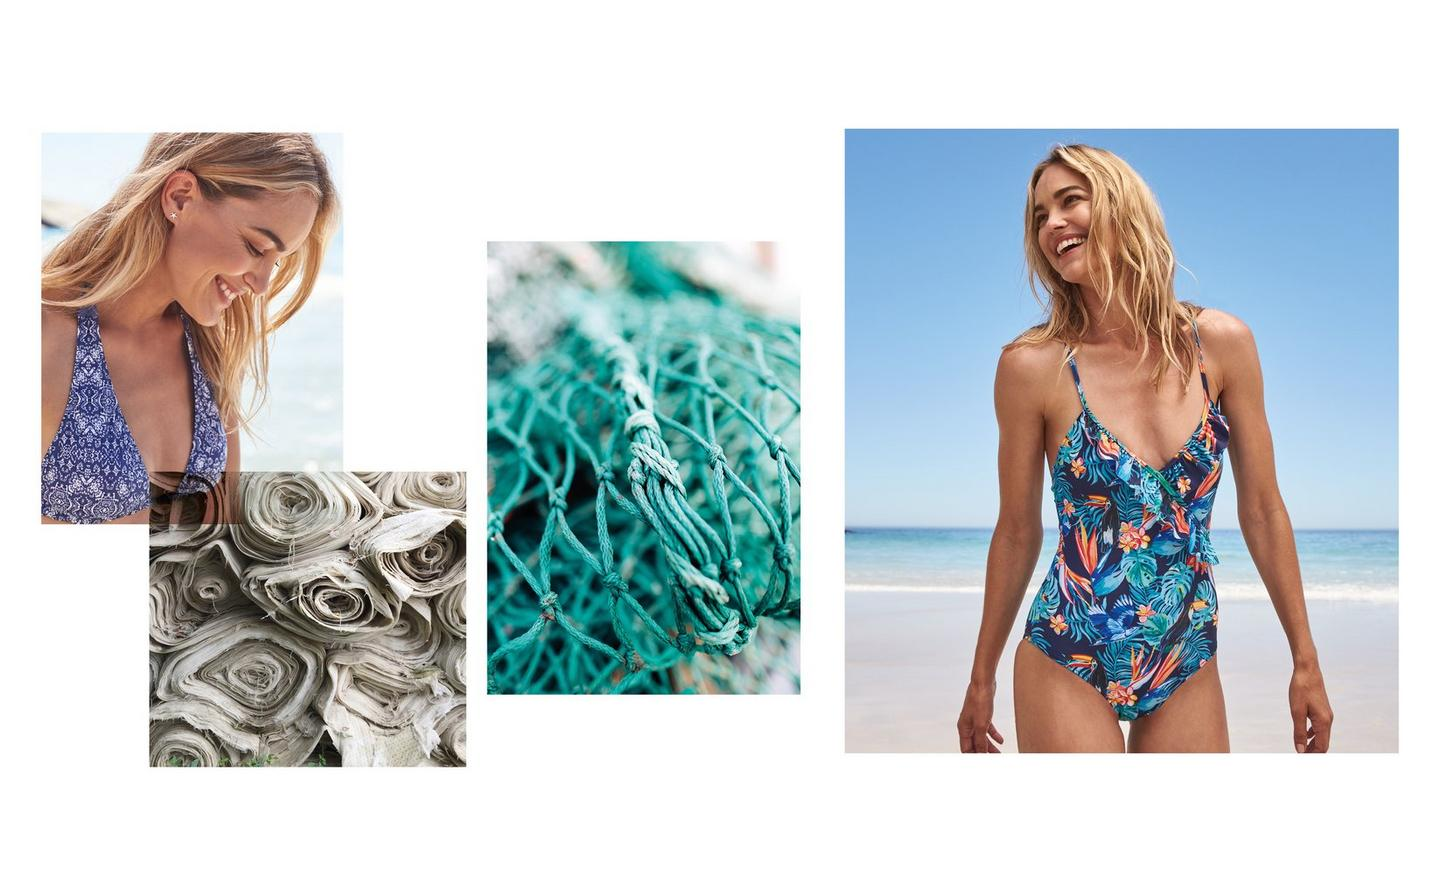 FatFace printed swimwear, made with eco-friendly fabric that's better for the environment